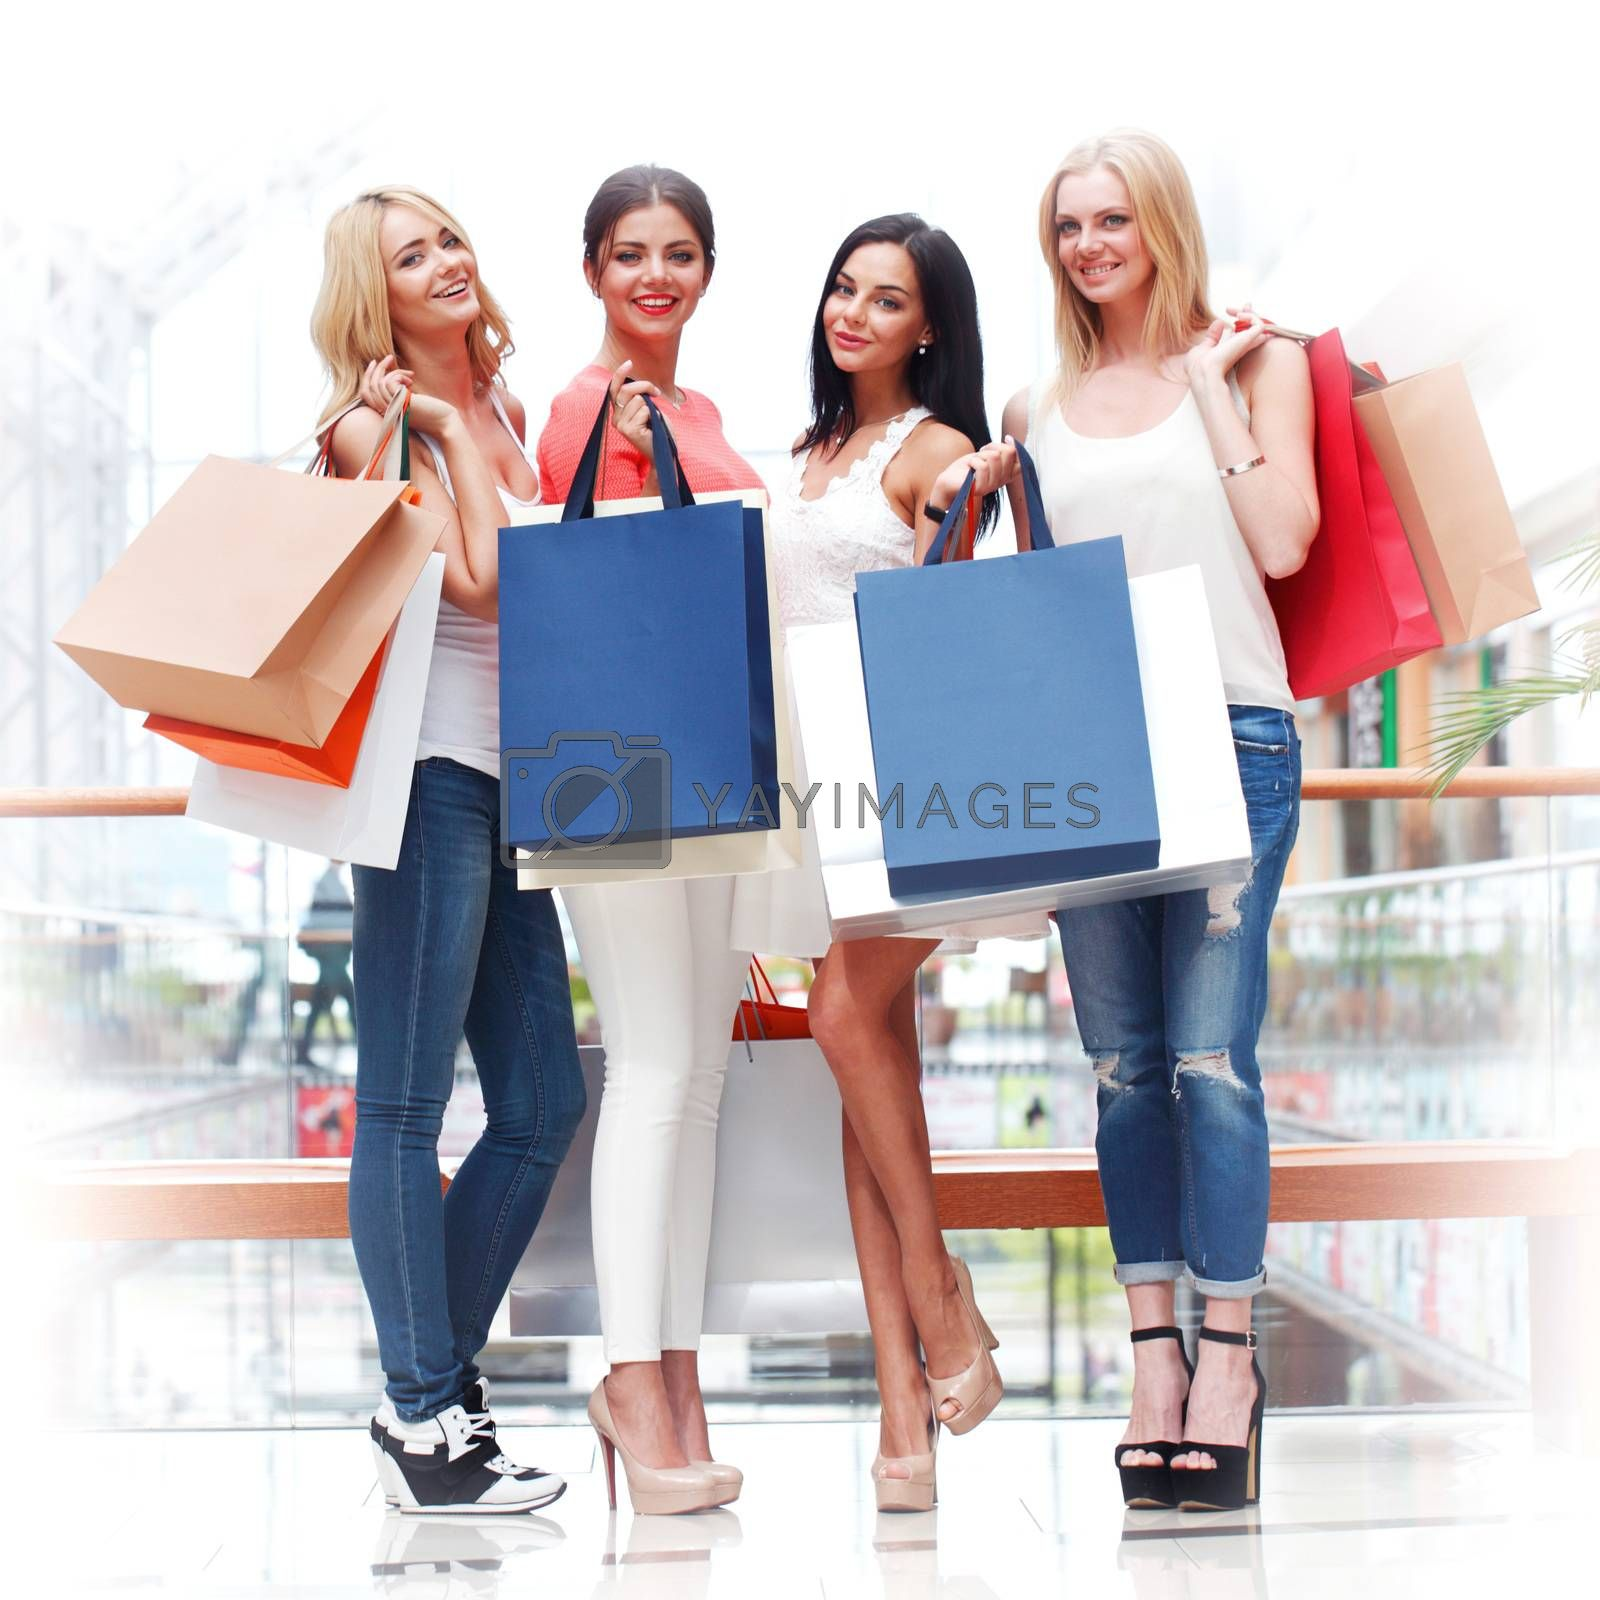 Happy shopping women by ALotOfPeople